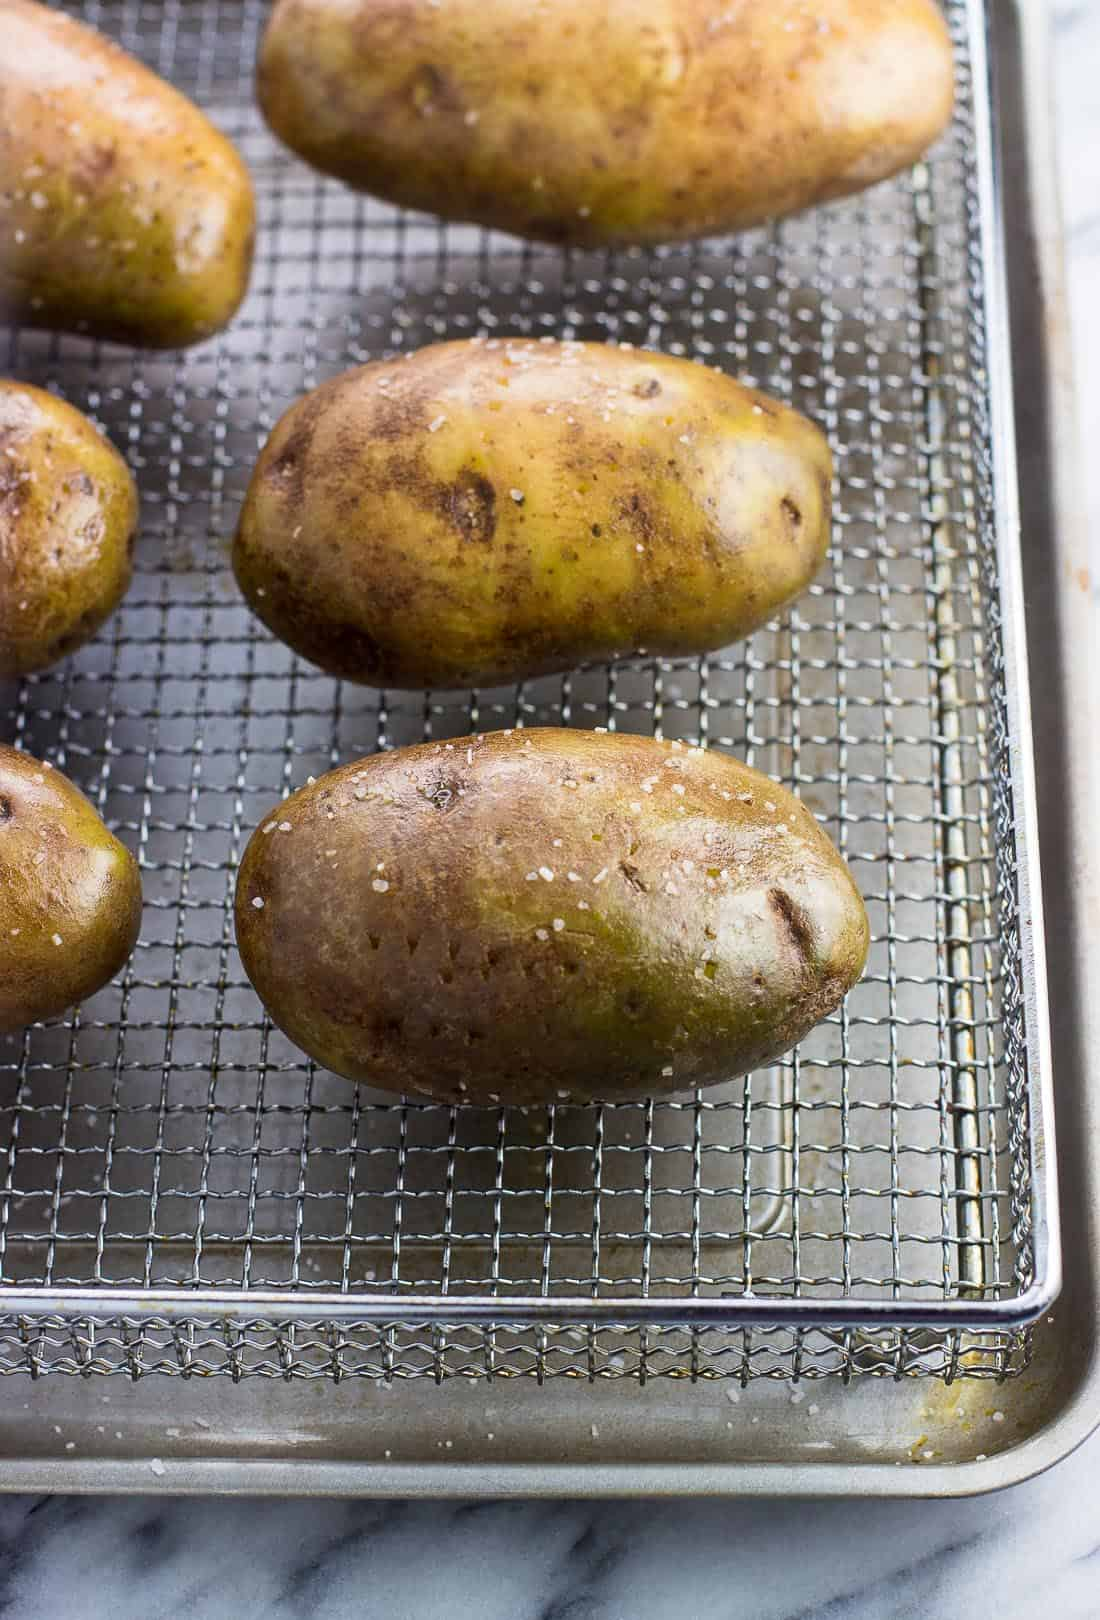 Oiled and salted potatoes on an air fryer basket